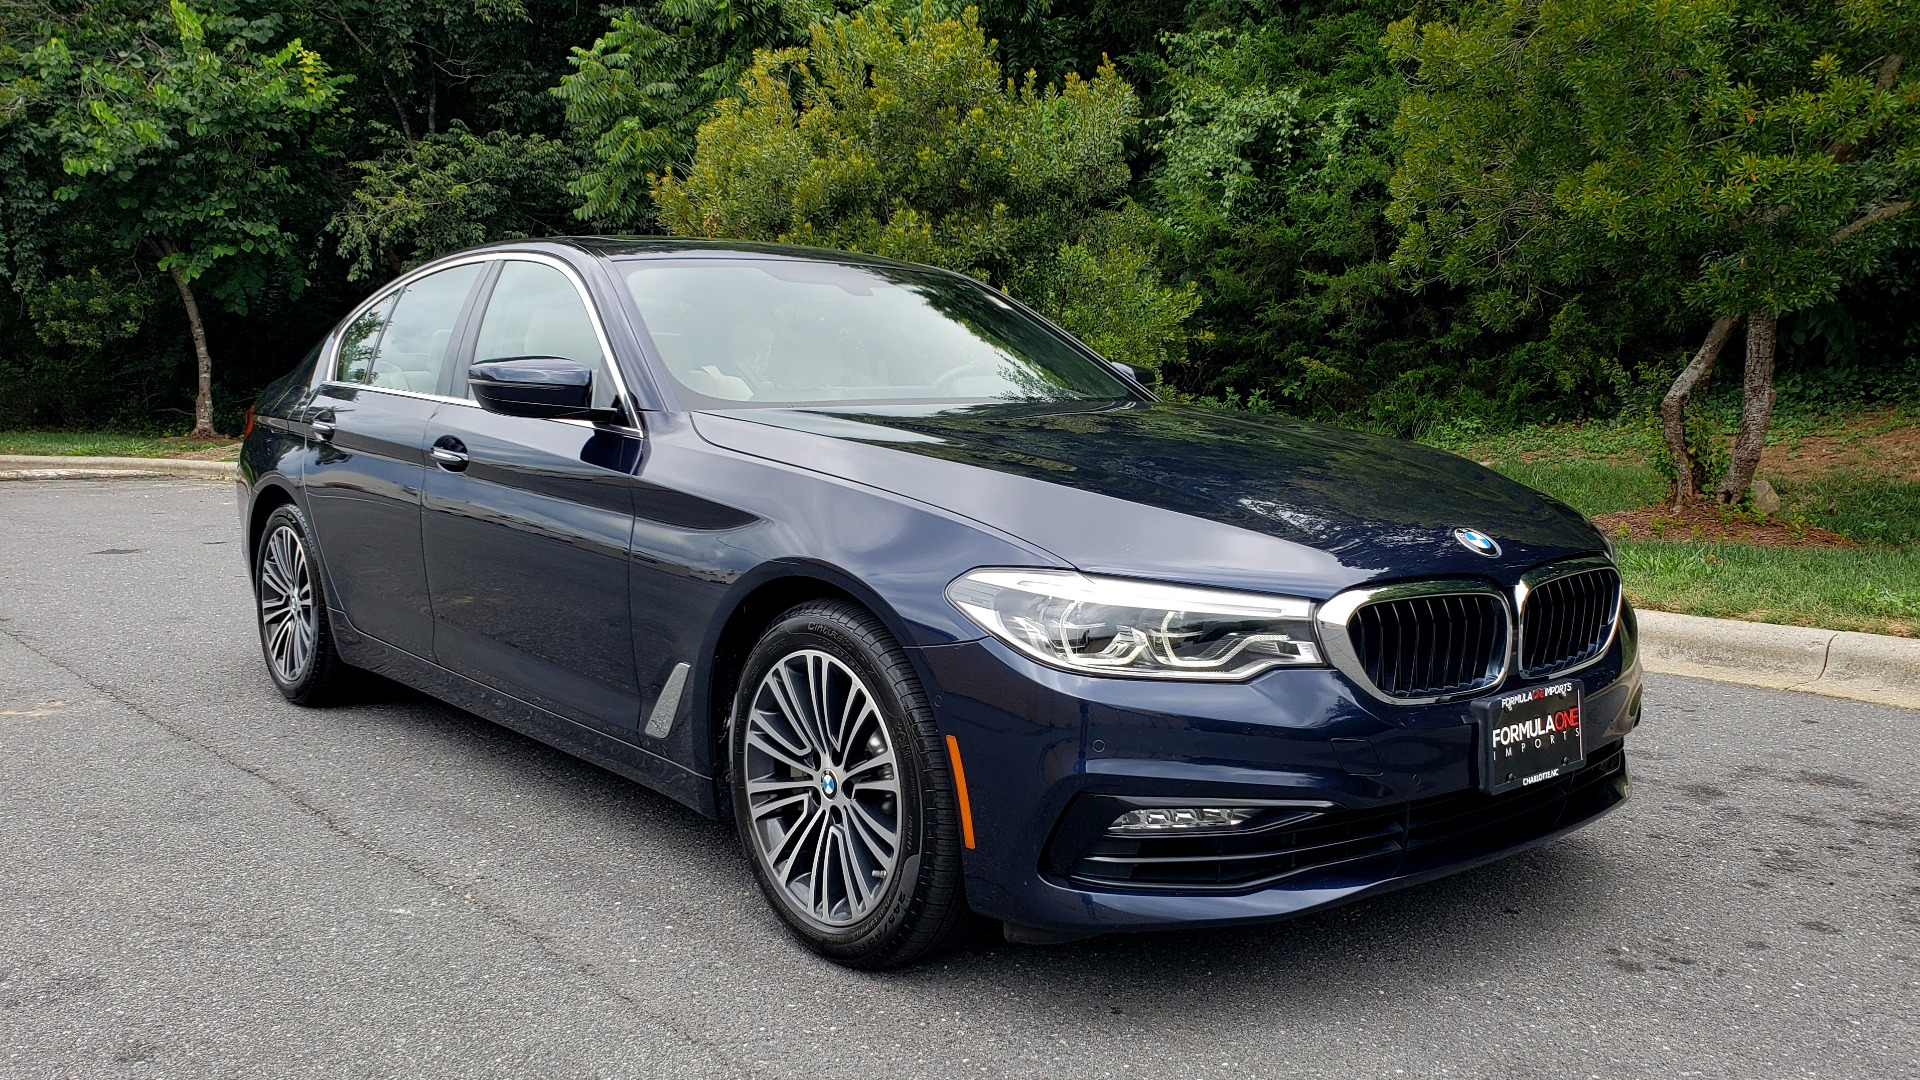 Used 2017 BMW 5 SERIES 540I XDRIVE PREMIUM / NAV / HUD / SUNROOF / REARVIEW for sale $36,595 at Formula Imports in Charlotte NC 28227 4